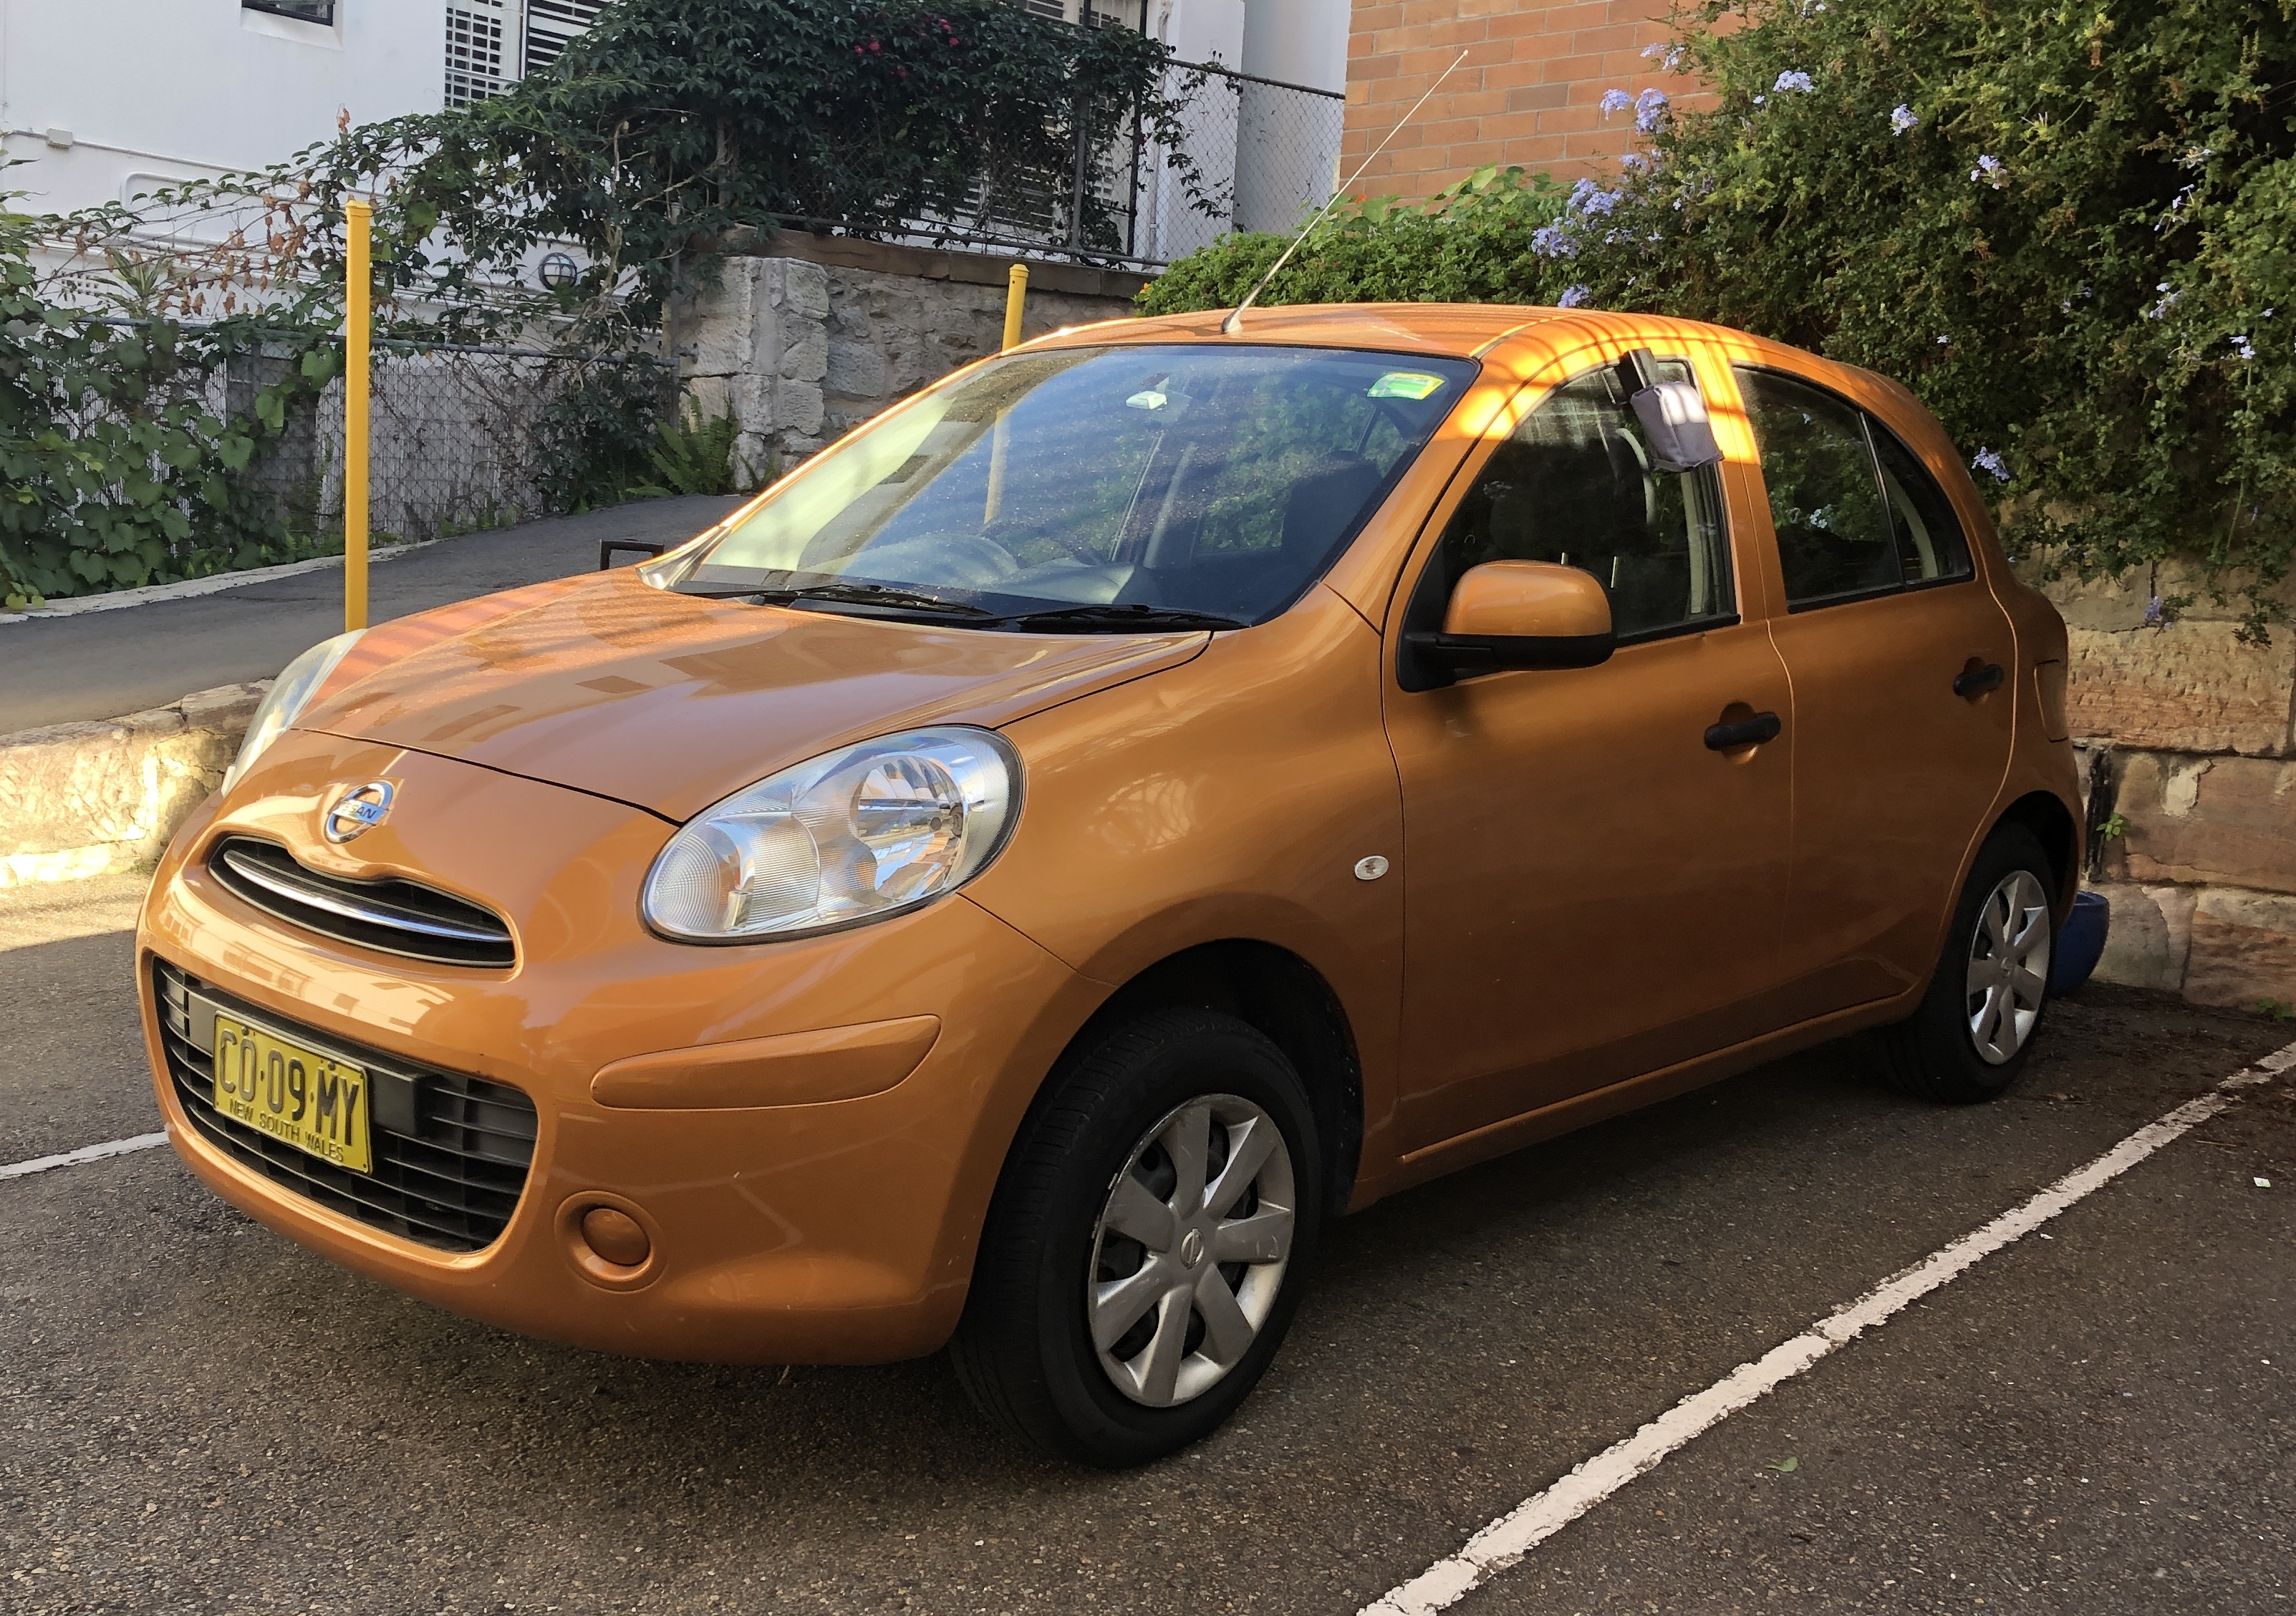 Picture of Katelyn's 2011 Nissan Micra